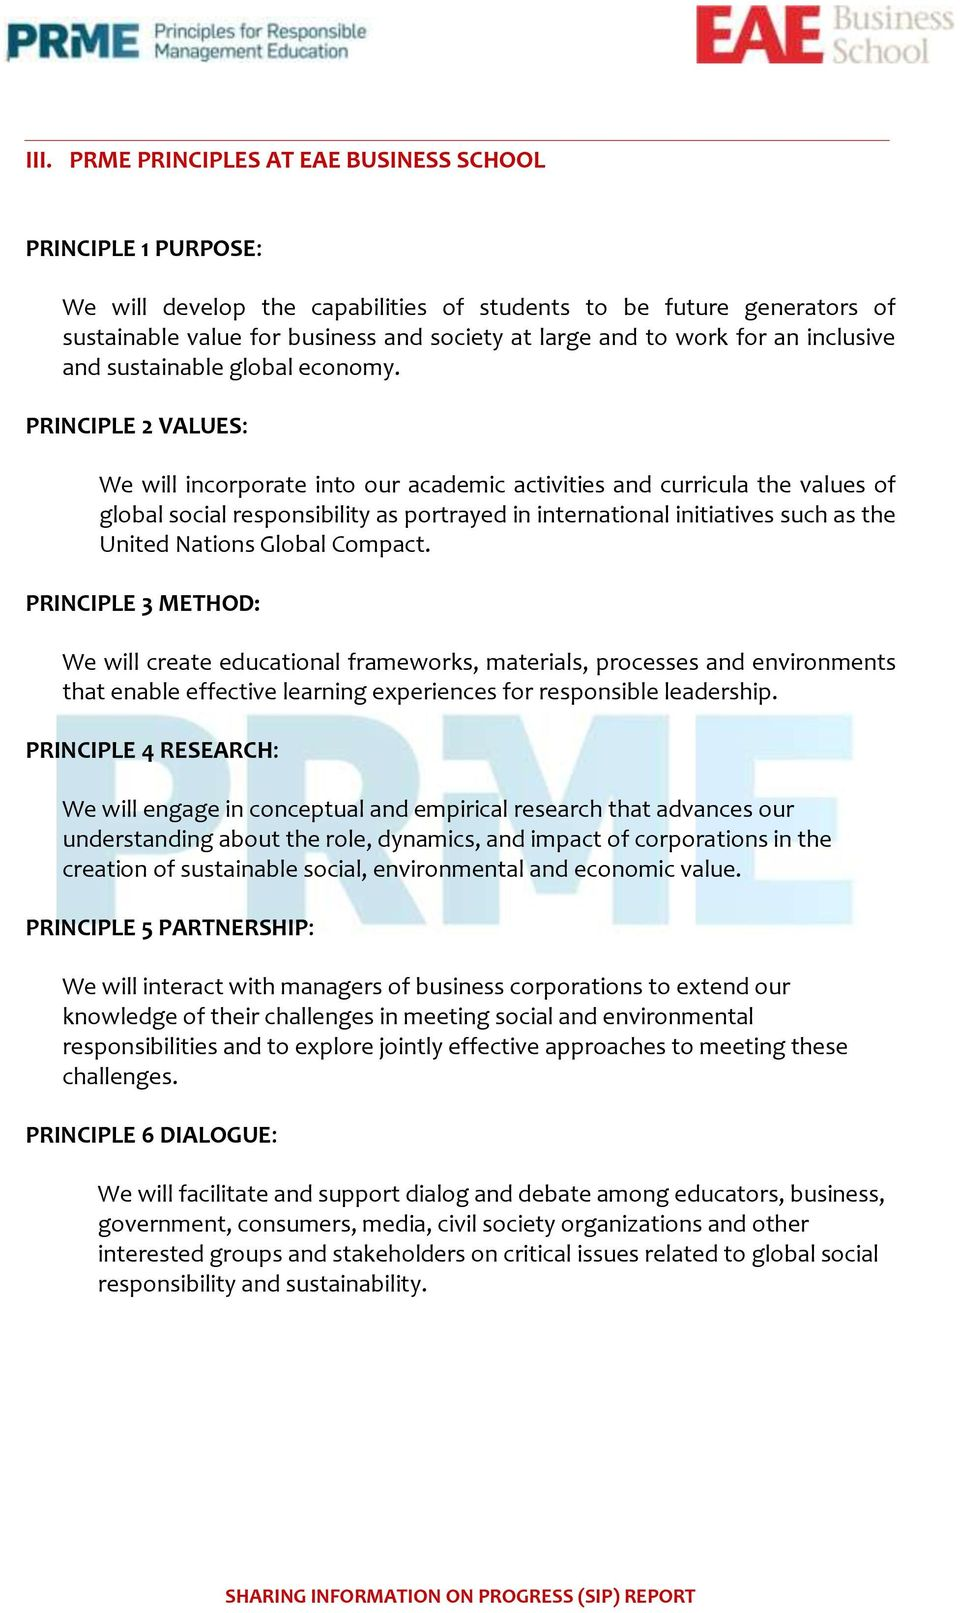 PRINCIPLE 2 VALUES: We will incorporate into our academic activities and curricula the values of global social responsibility as portrayed in international initiatives such as the United Nations